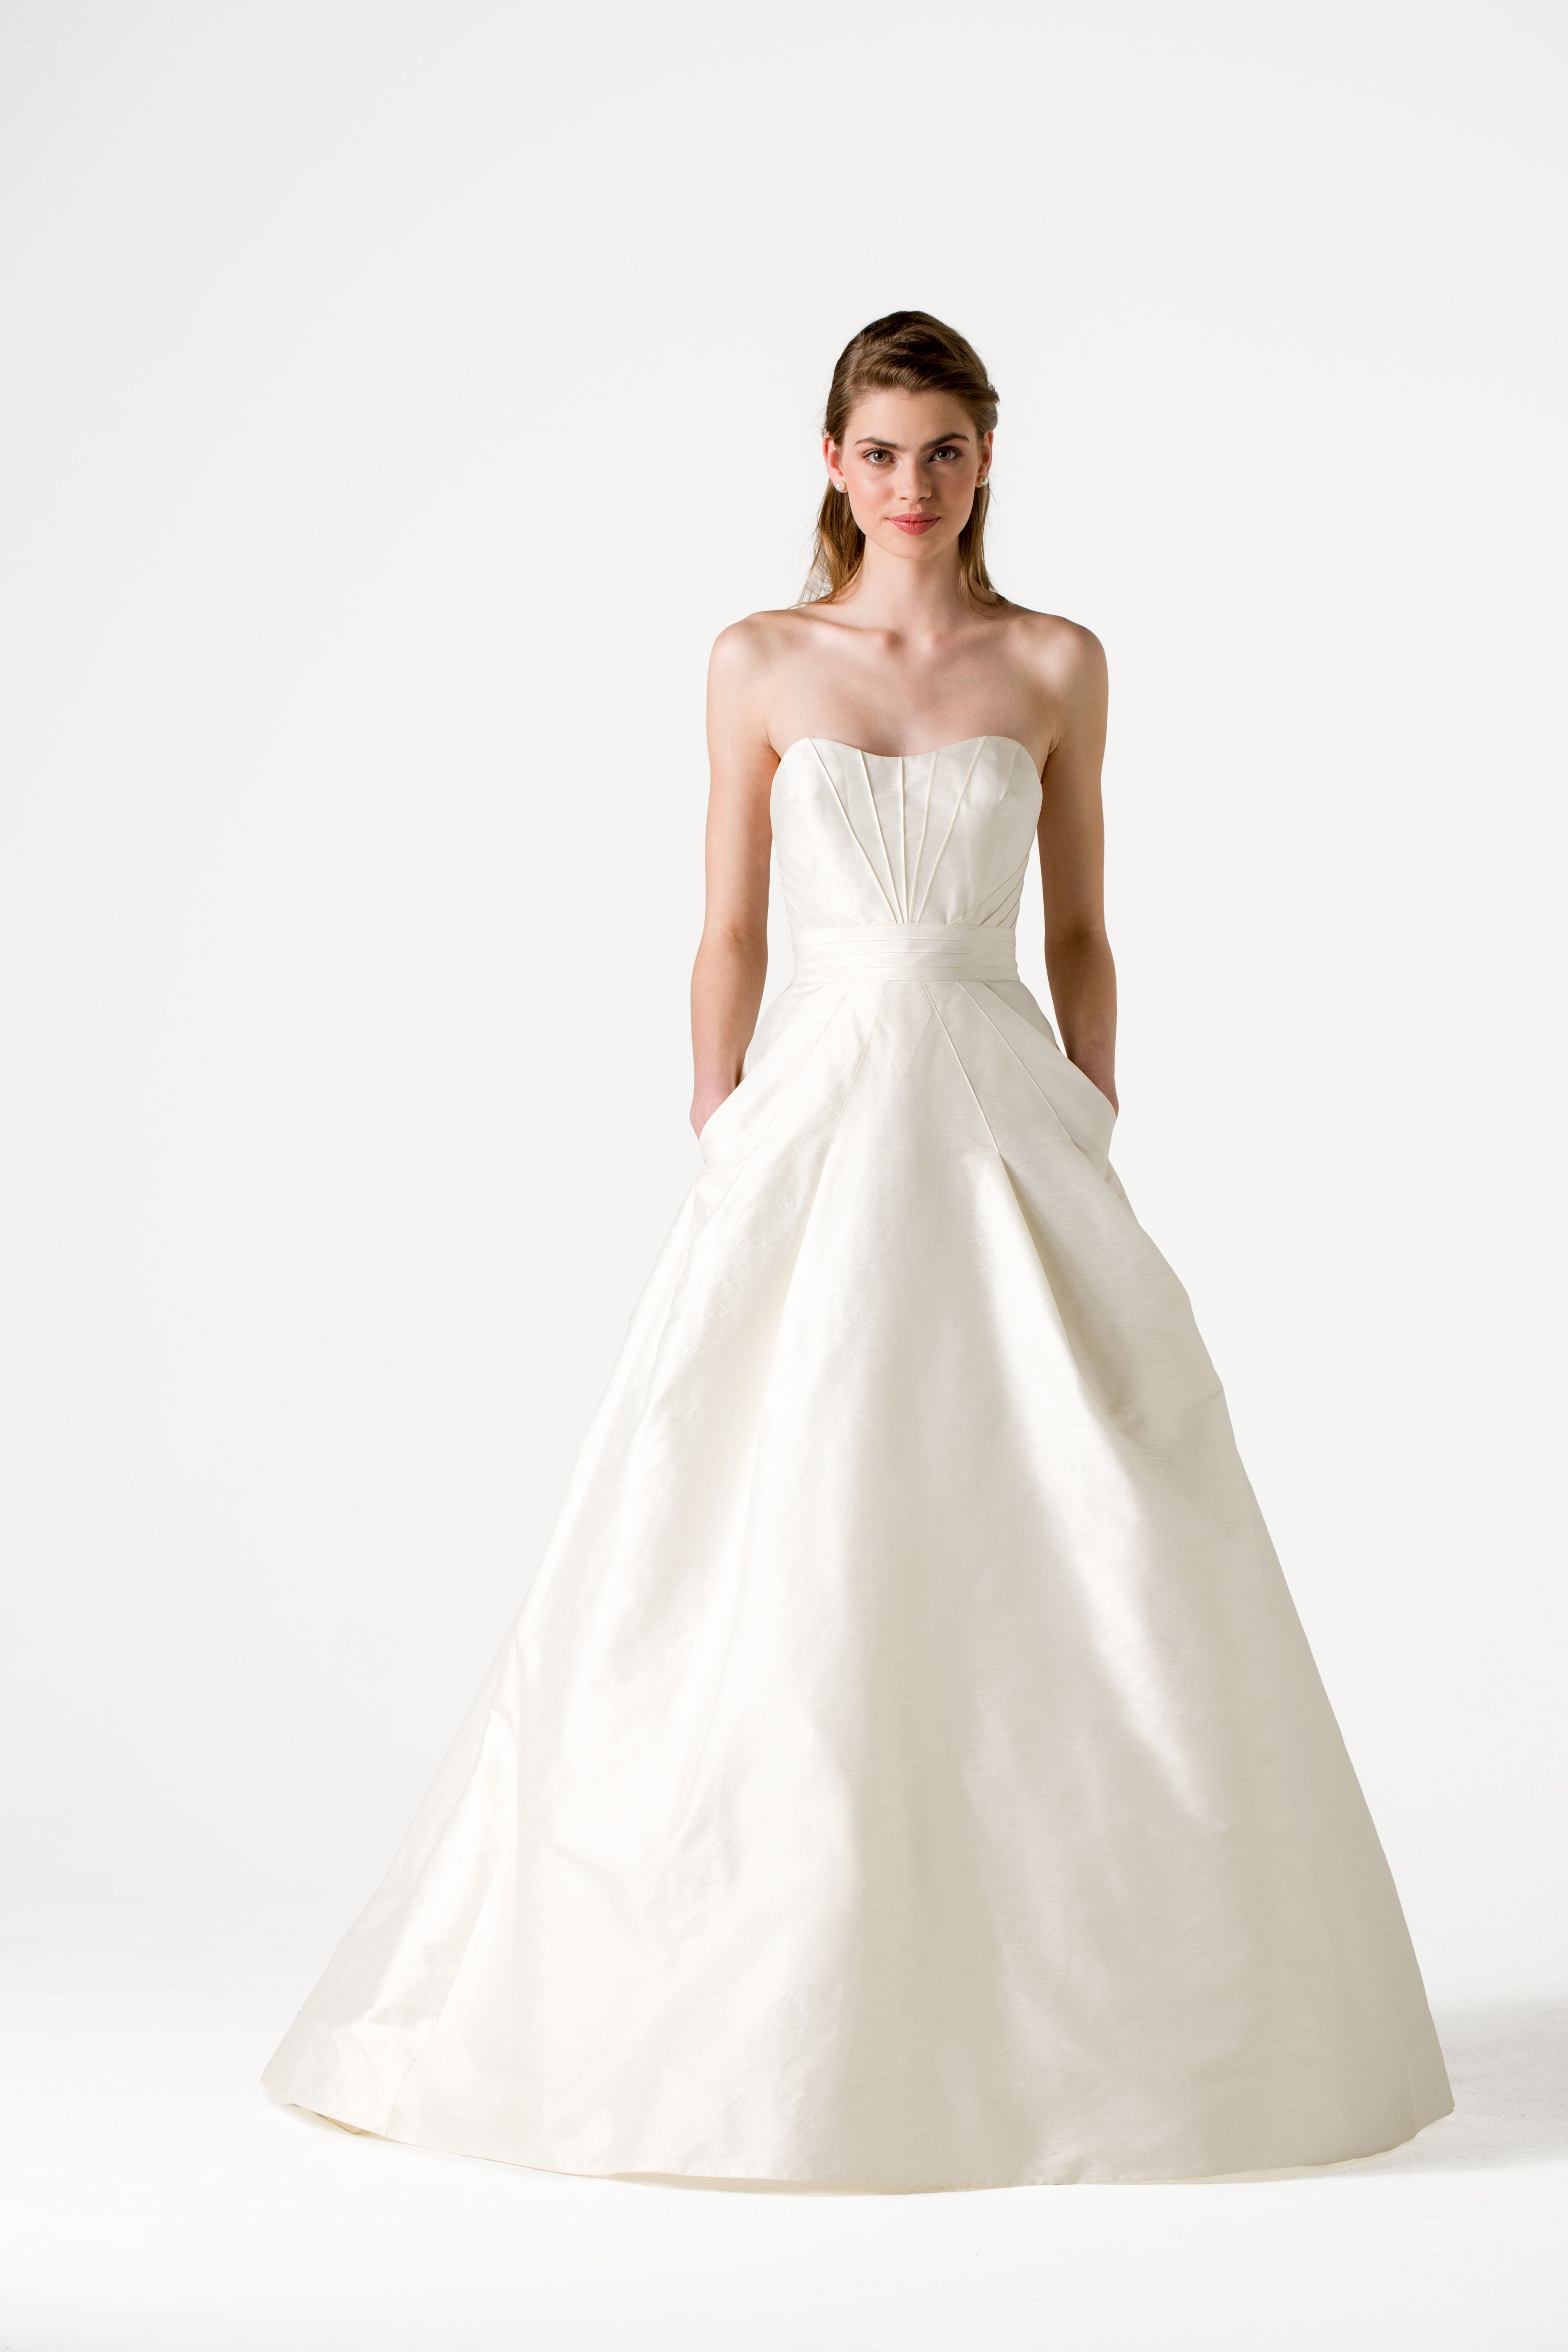 Aspen Blue Willow Bride by Anne Barge collection, Spring